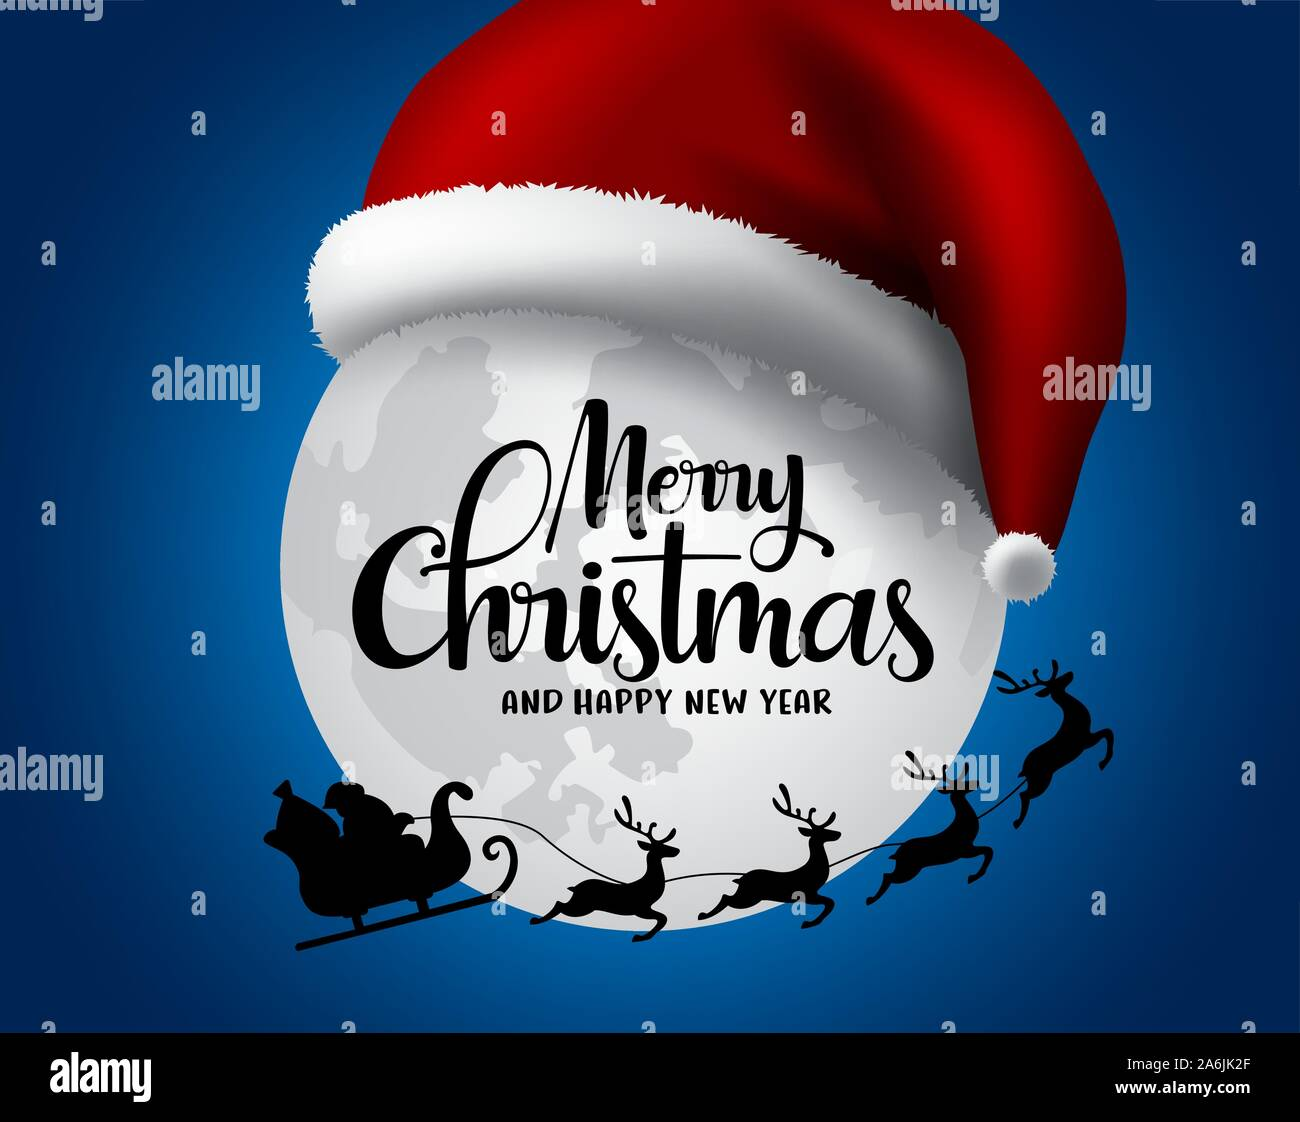 christmas with santa claus in sleigh vector background design merry christmas and happy new year greeting text with santa claus in sleigh riding stock vector image art alamy https www alamy com christmas with santa claus in sleigh vector background design merry christmas and happy new year greeting text with santa claus in sleigh riding image331095031 html